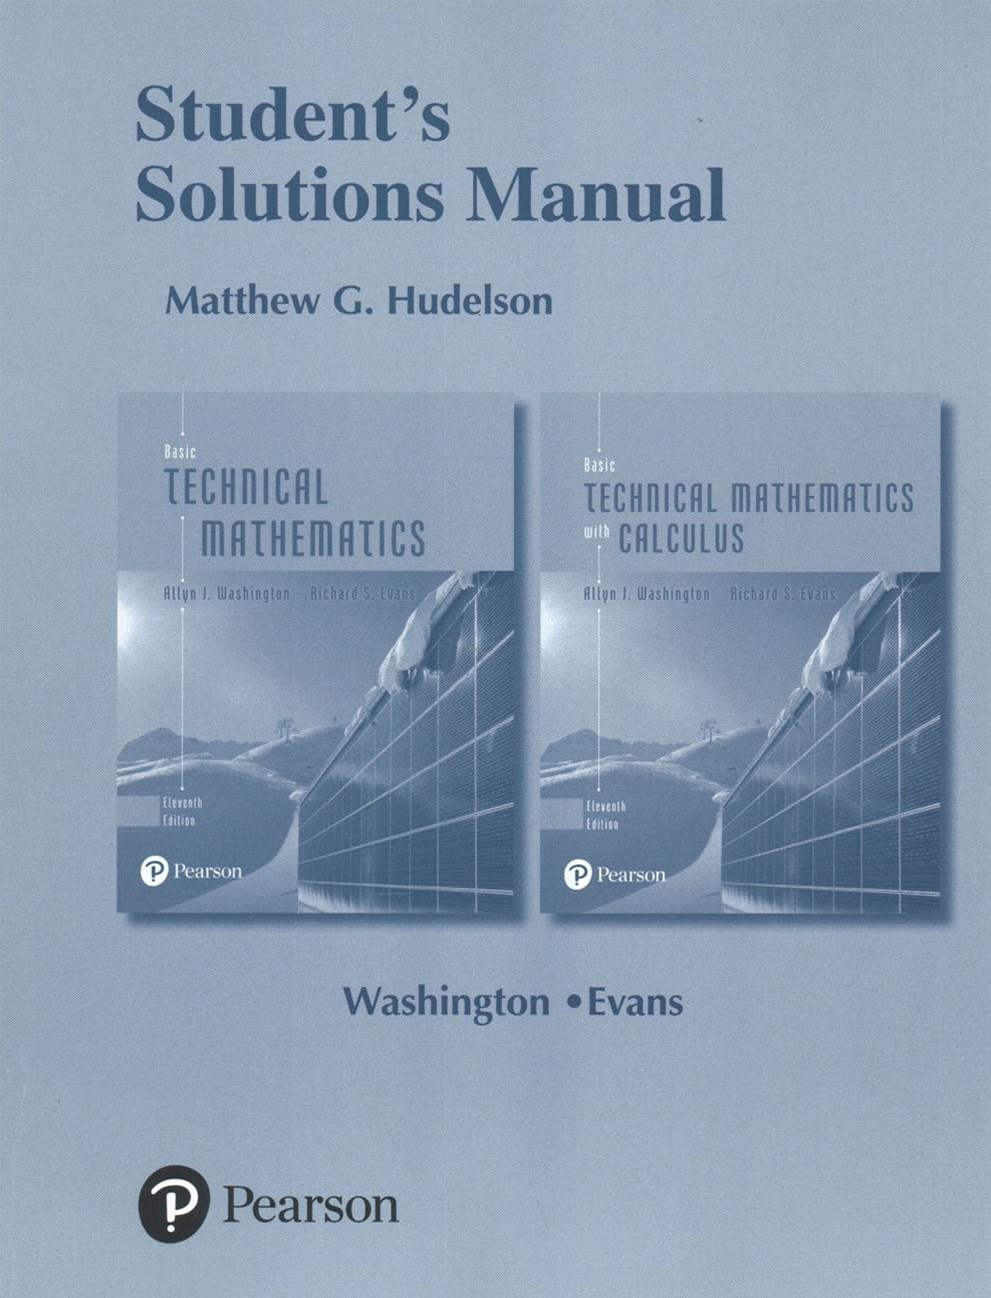 Student Solutions Manual for Basic Technical Mathematics and Basic Technical Mathematics with Calculus